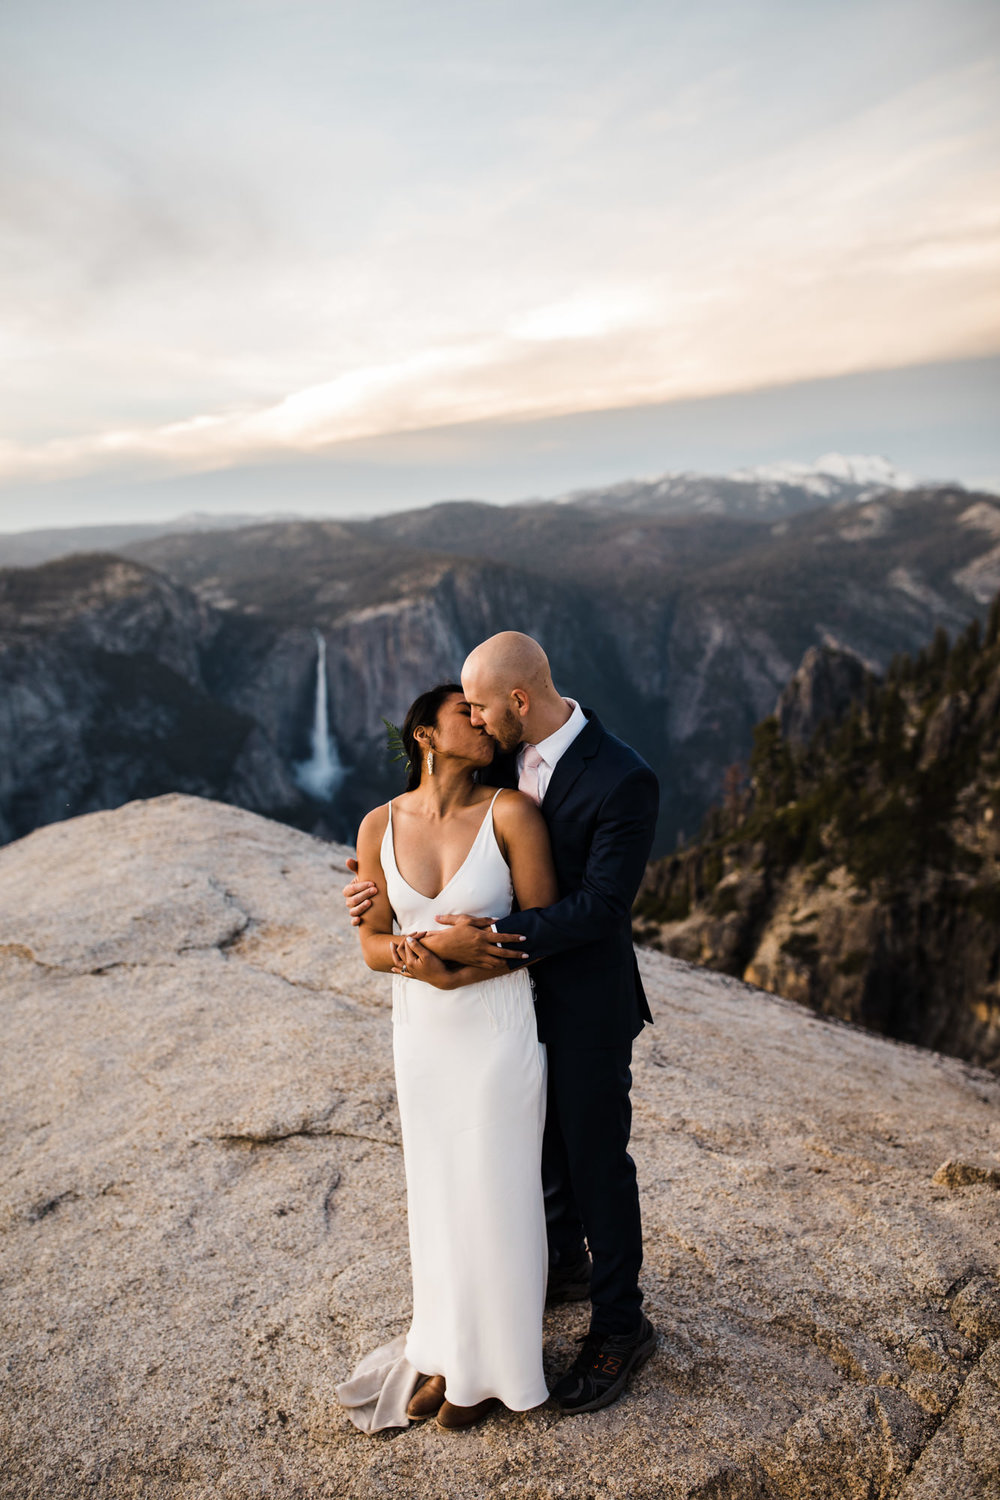 intimate wedding in yosemite national park | destination adventure wedding photographers | the hearnes adventure photography | www.thehearnes.com